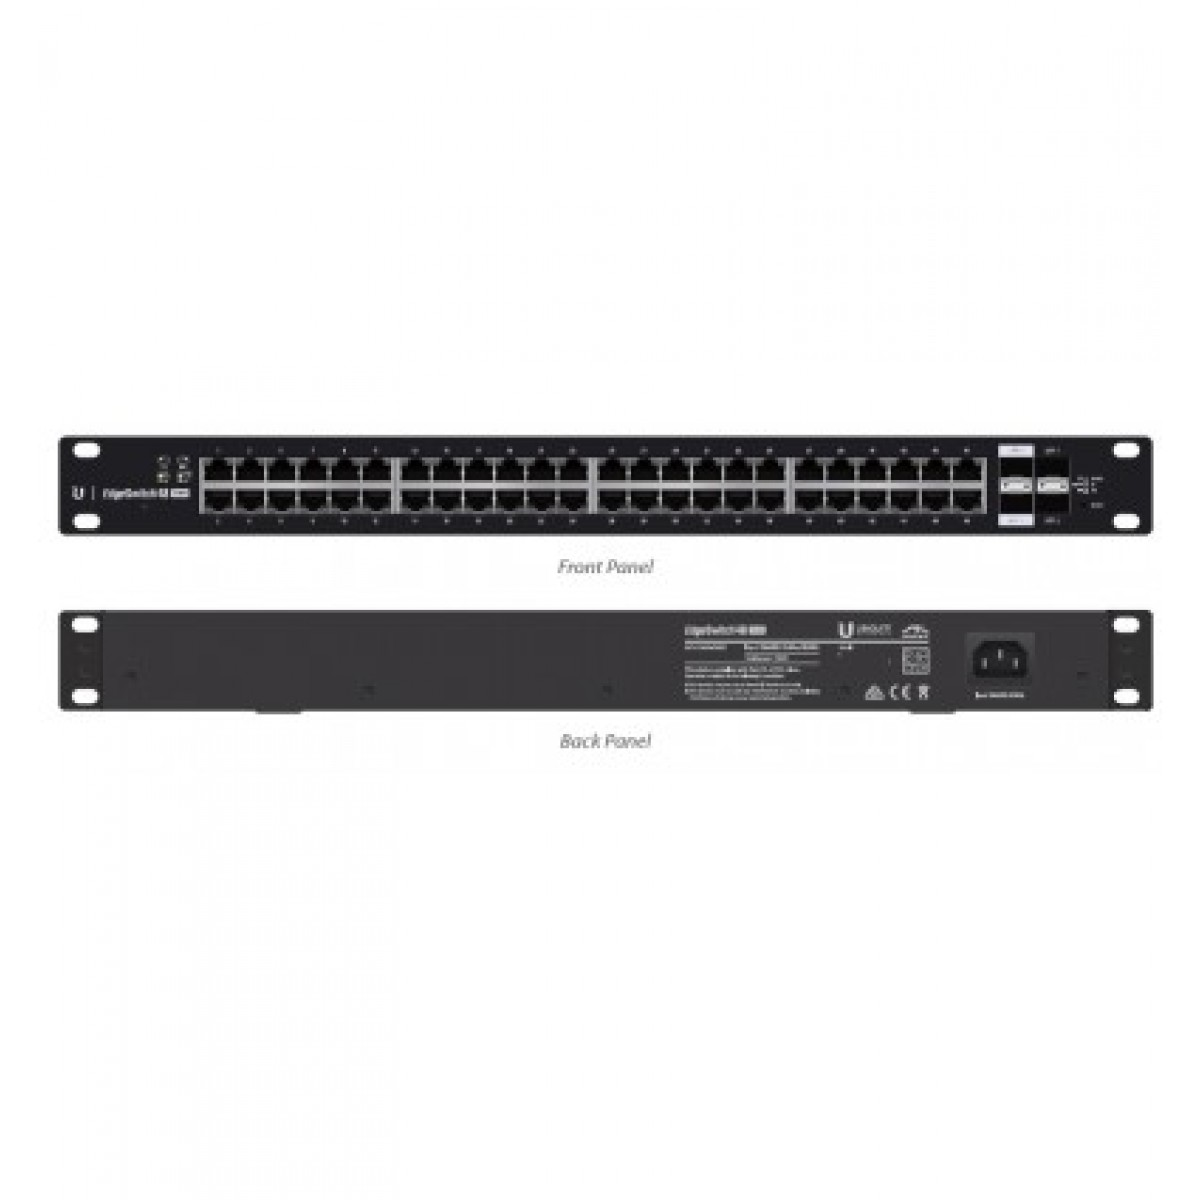 /images/Products/ubiquiti-edgeswitch-48-port-with-750w-poe-ub-es-48-750w-c03_8e4c0e2c-60e8-48aa-bbde-dfed9e185d6b.jpg